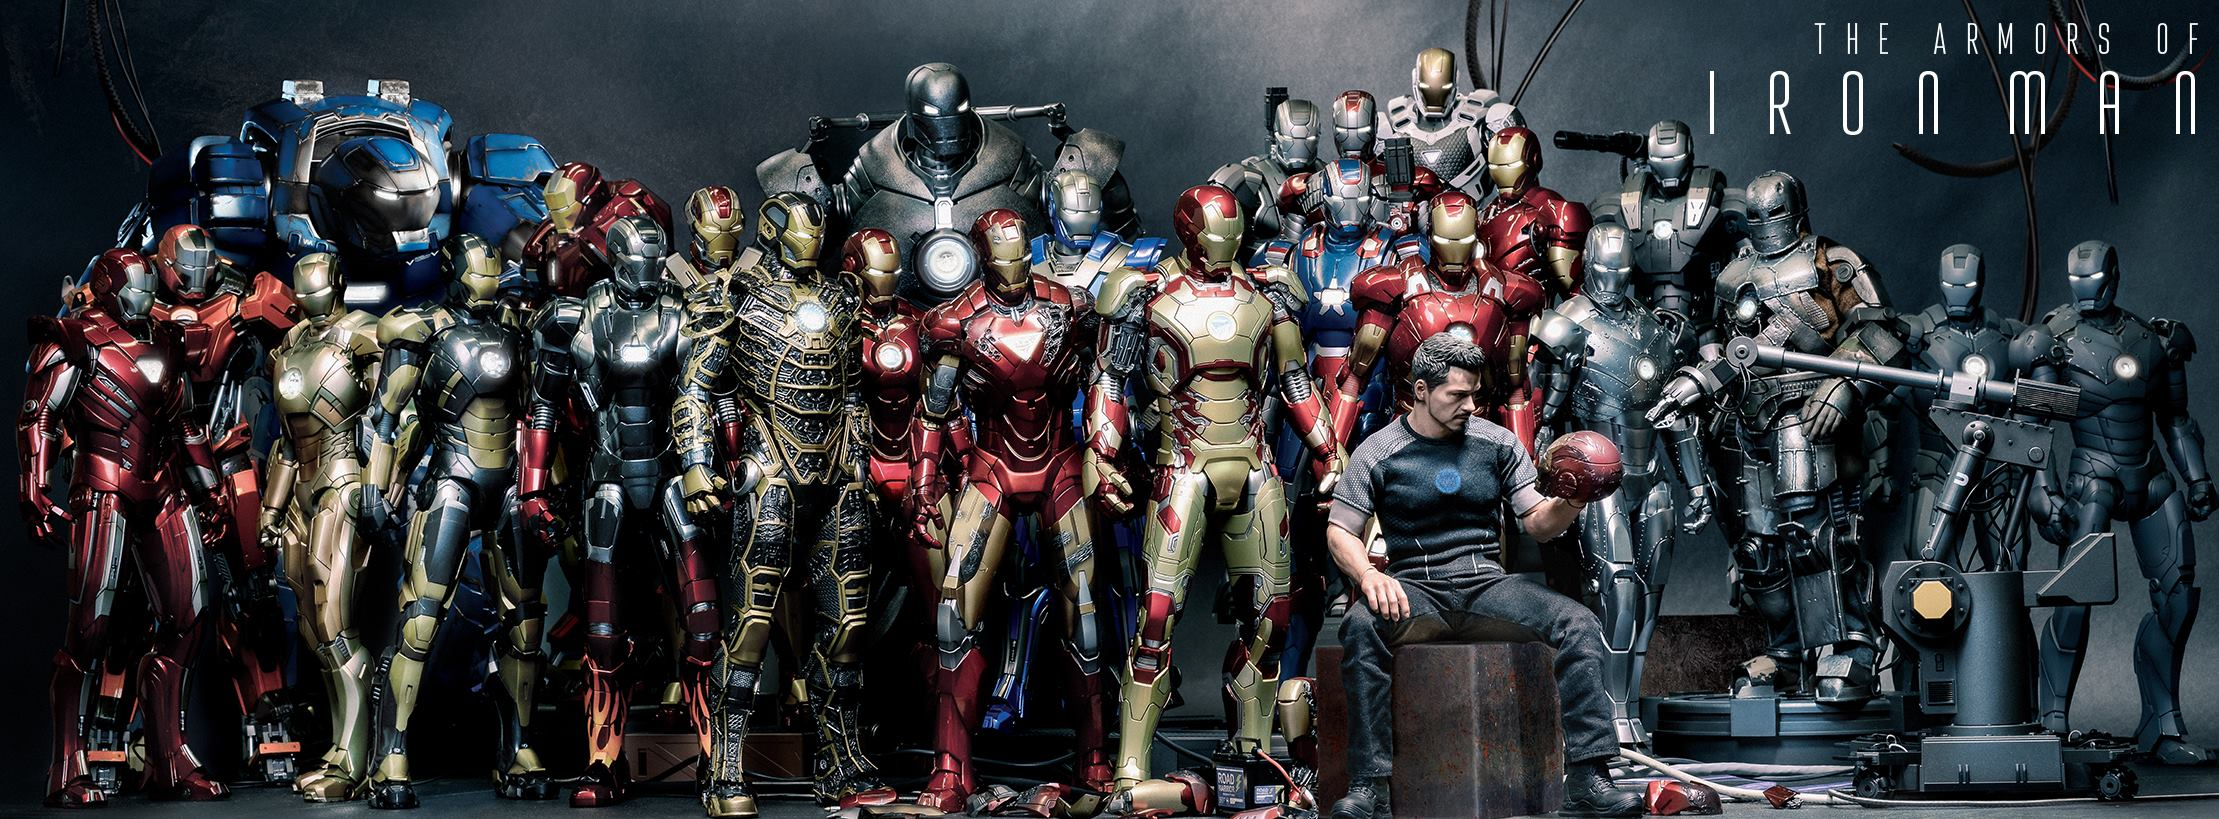 iron man all mark - photo #8